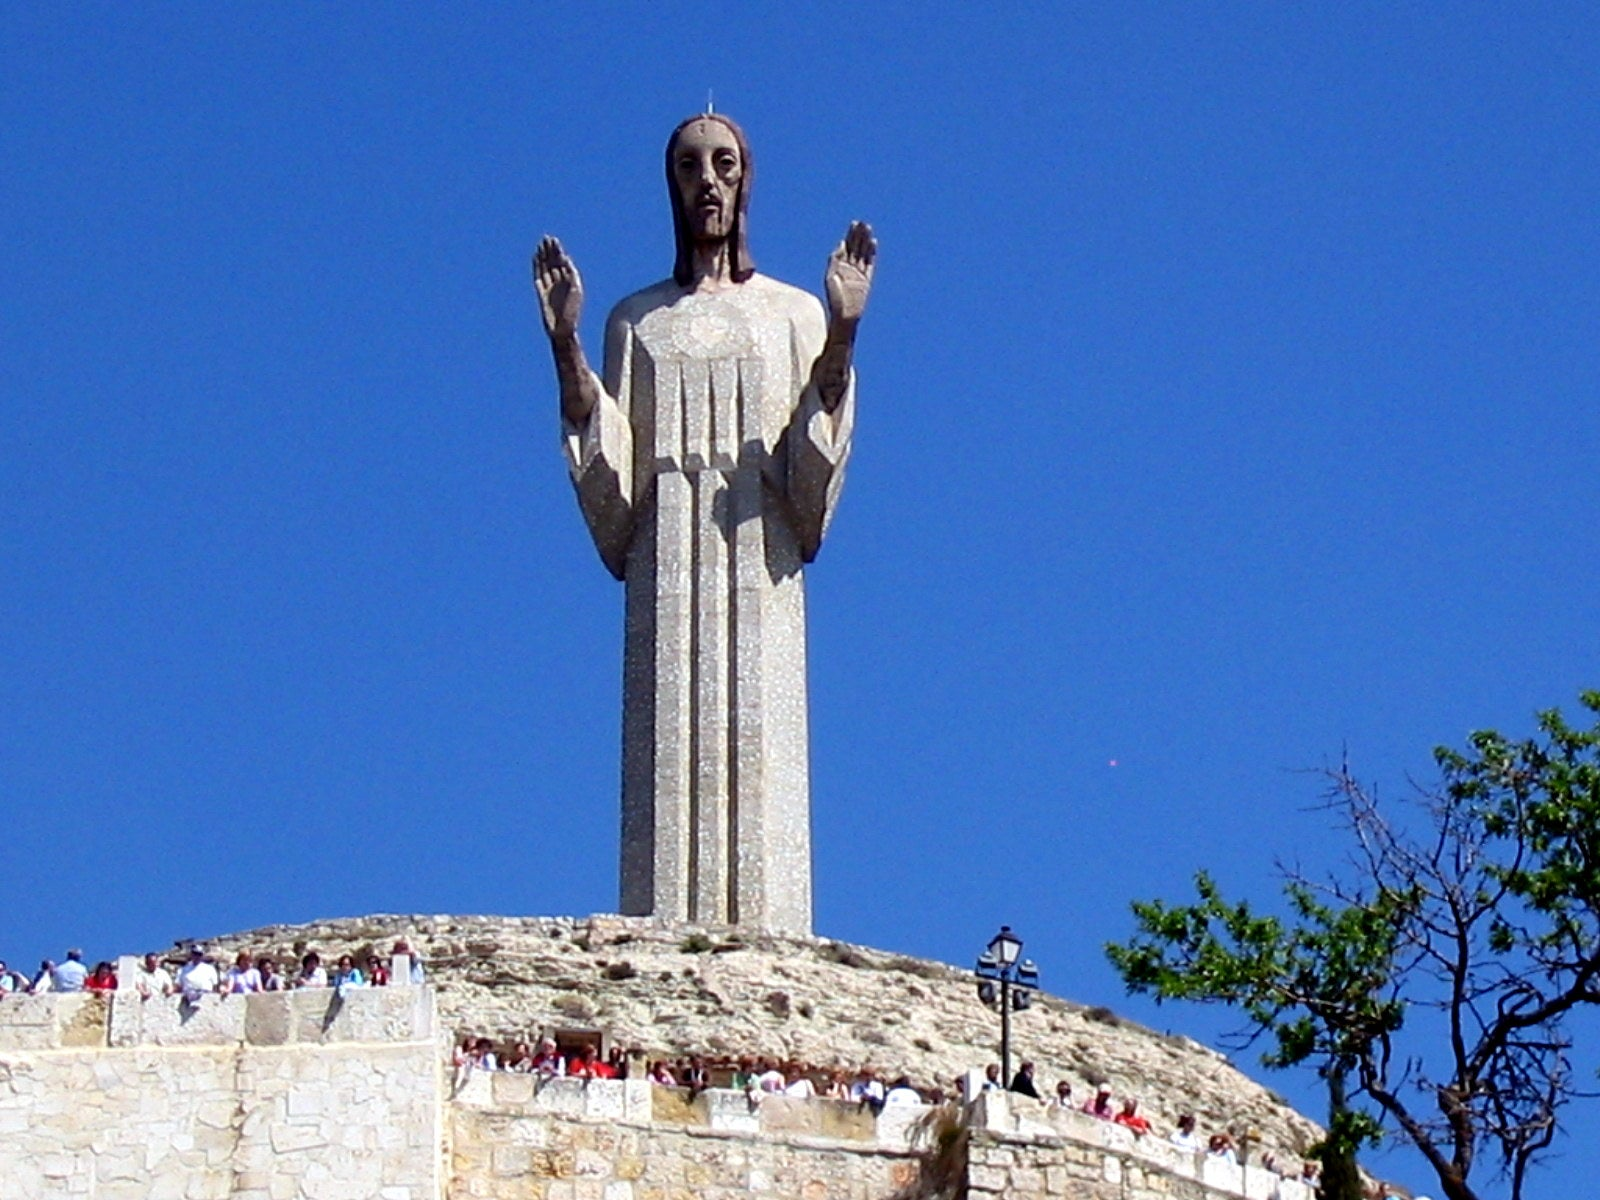 The Christ of Otero